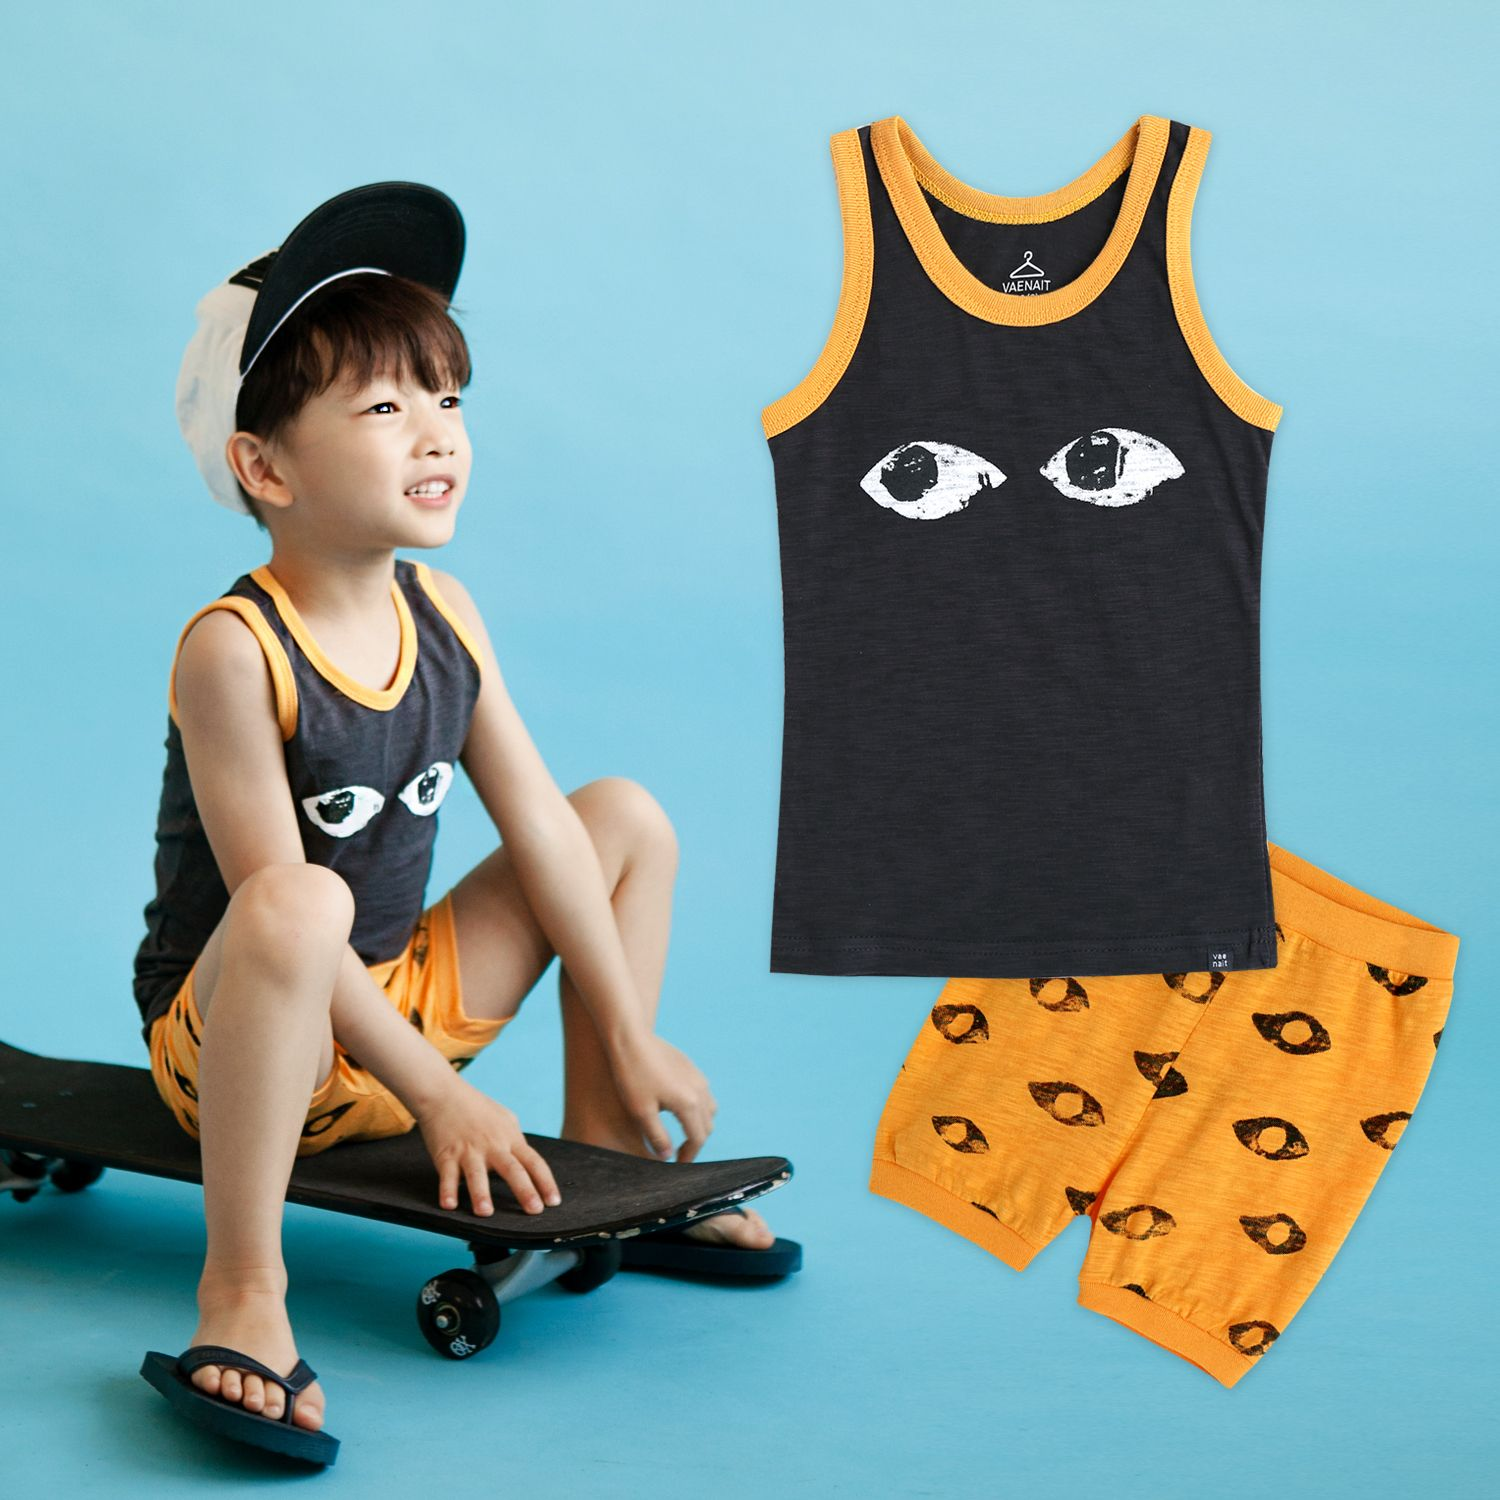 7a376fa00db5 Vaenait Baby Infant Kids Boy Short Pajama set Outfit Clothes